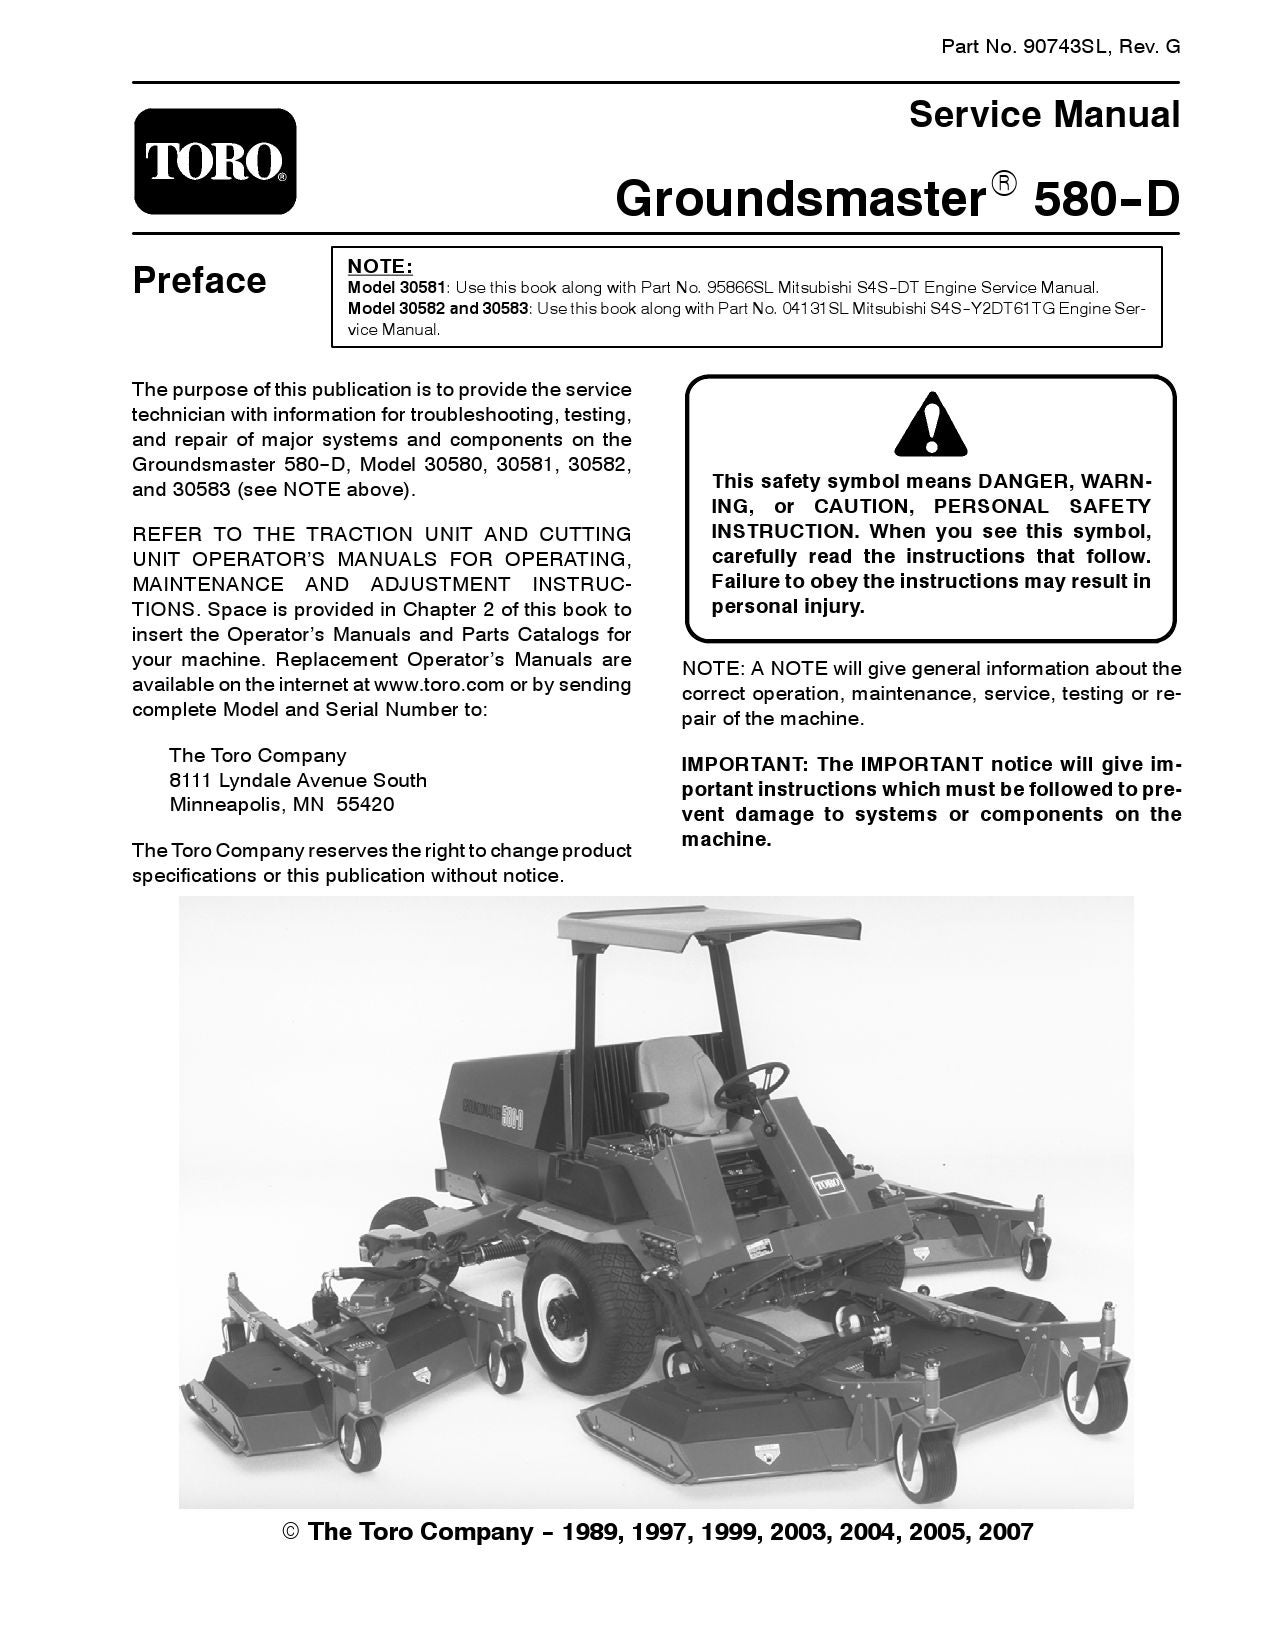 90743sl pdf groundsmaster 580 d rev g dec 2007 by negimachi 90743sl pdf groundsmaster 580 d rev g dec 2007 by negimachi negimachi issuu